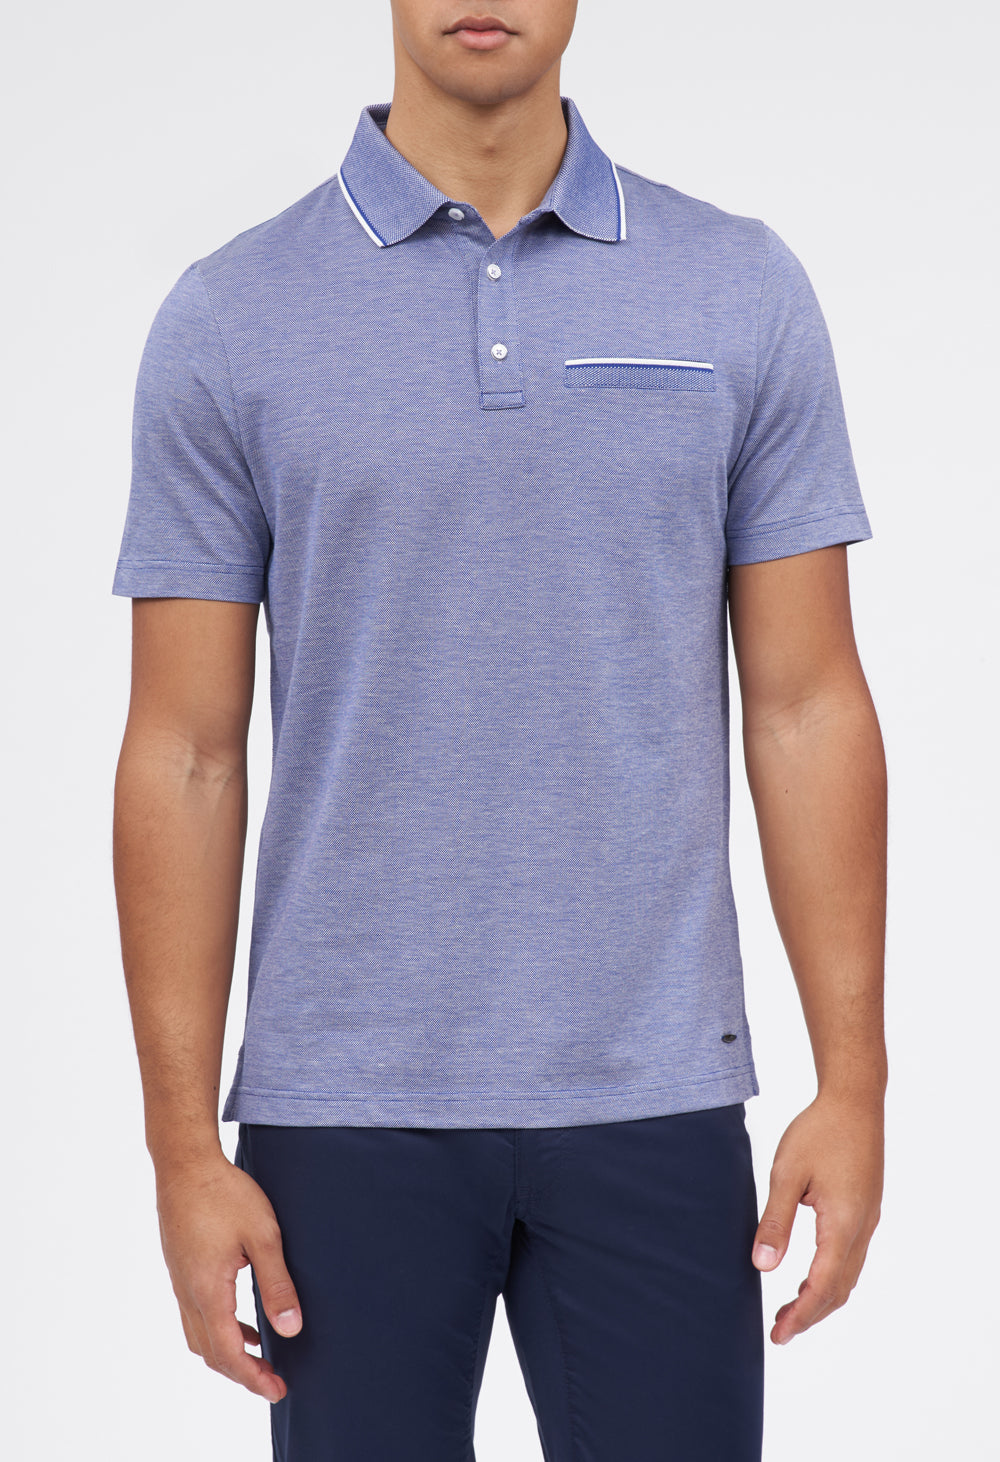 Petter 3-Button Oxford Pique Polo w/ Contrast Collar